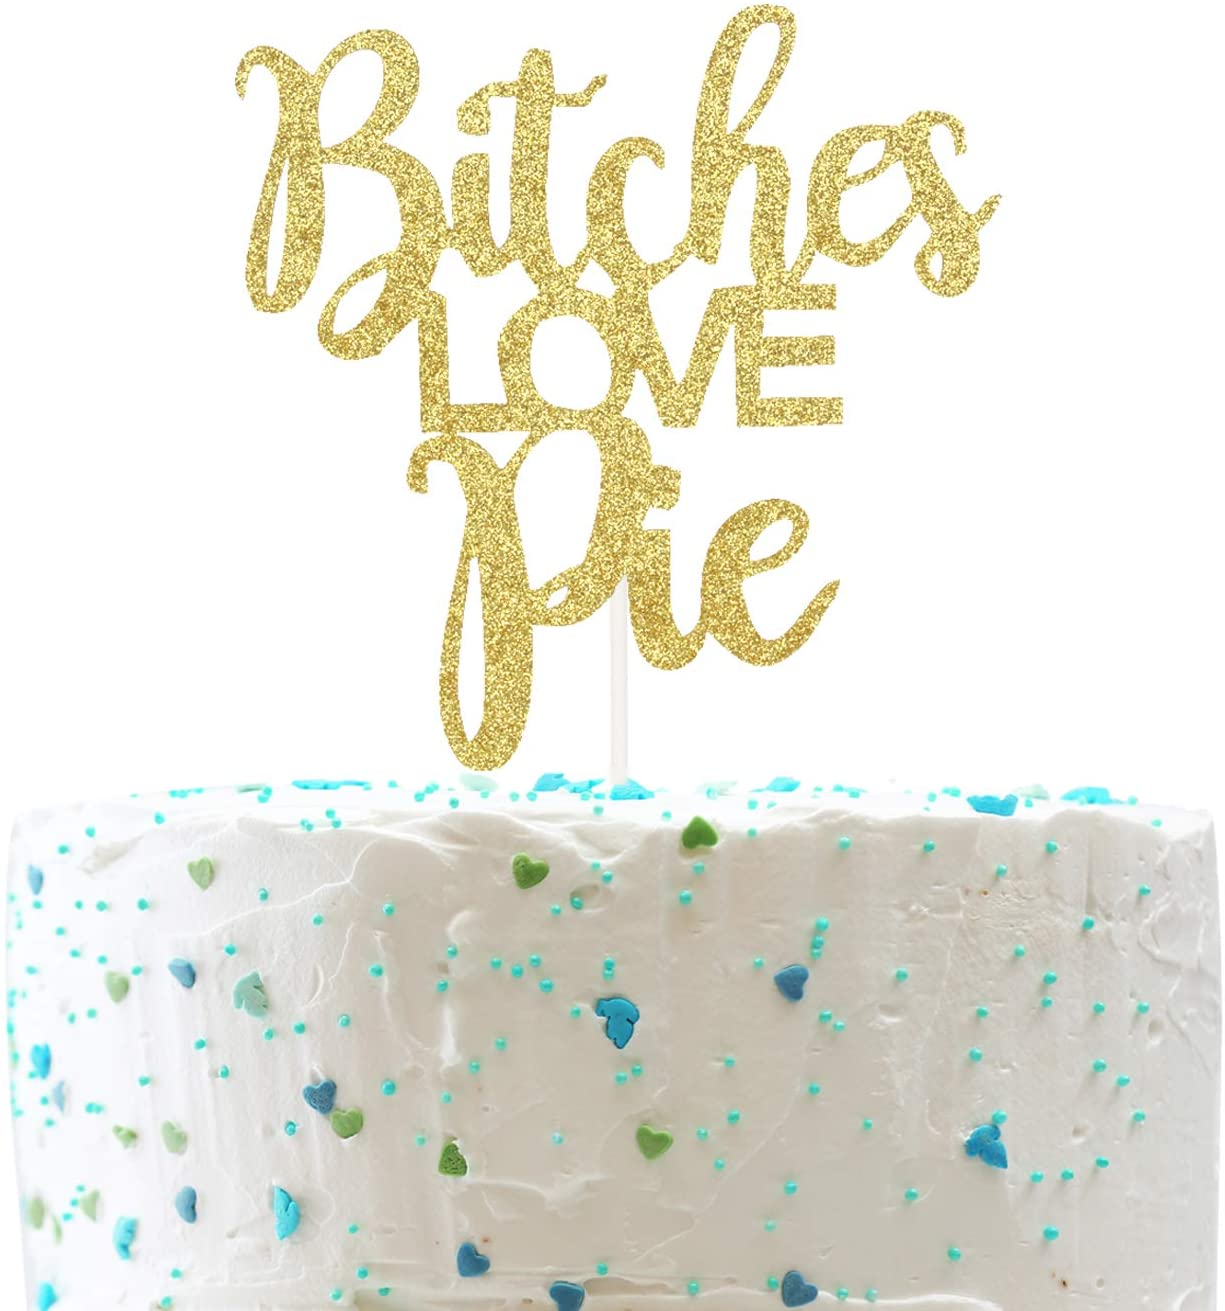 Bitches Love Pie Cake Topper for Bridal Shower Bachelorette Hen Party Decorations (Double Sided Gold Glitter)